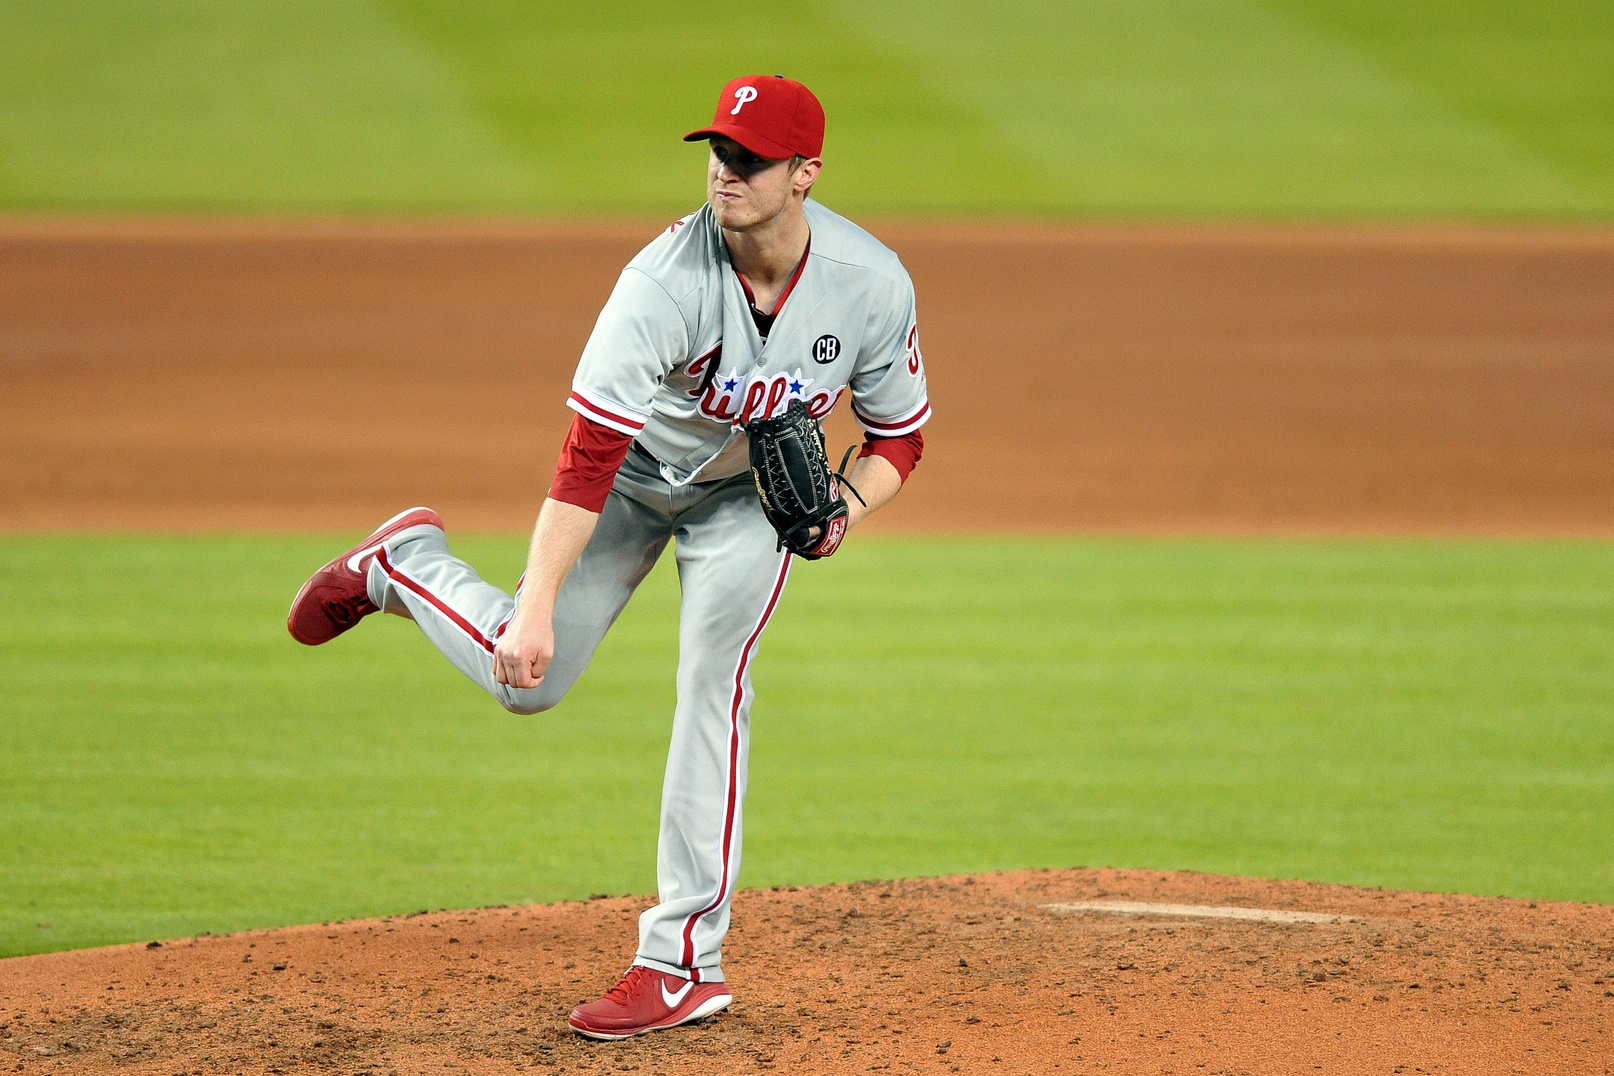 Kyle Kendrick lost another game Wednesday. Photo: USA Today Sports